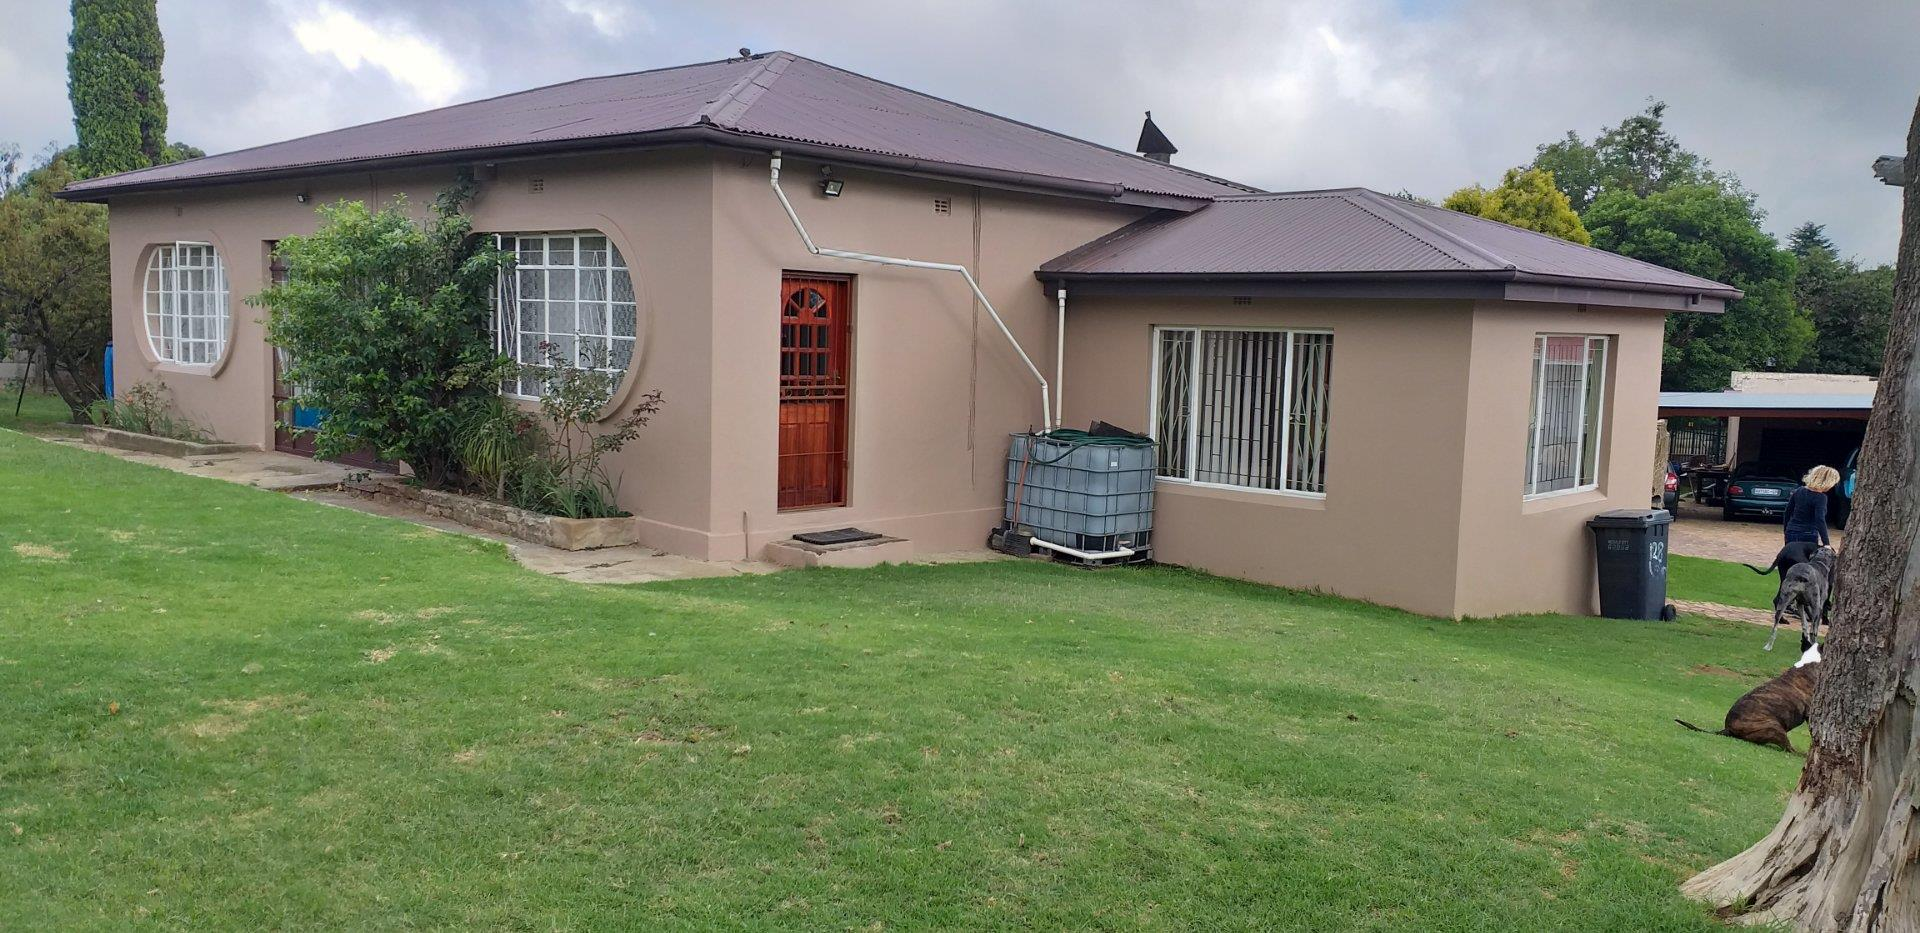 4 Bedroom House for Sale in Wentworth Park, Krugersdorp - Gauteng